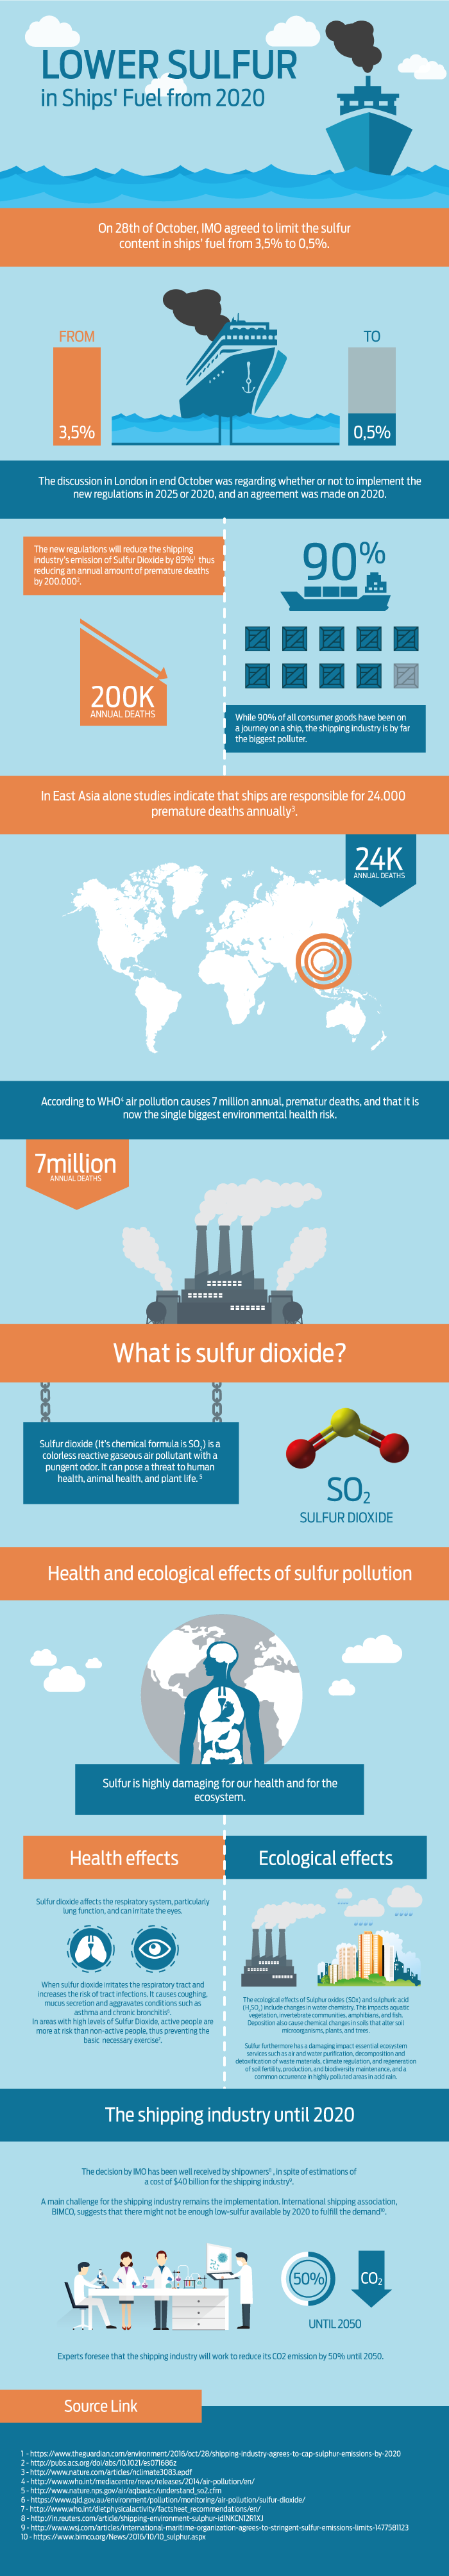 Sulfur regulations from 2020 for the shipping industry